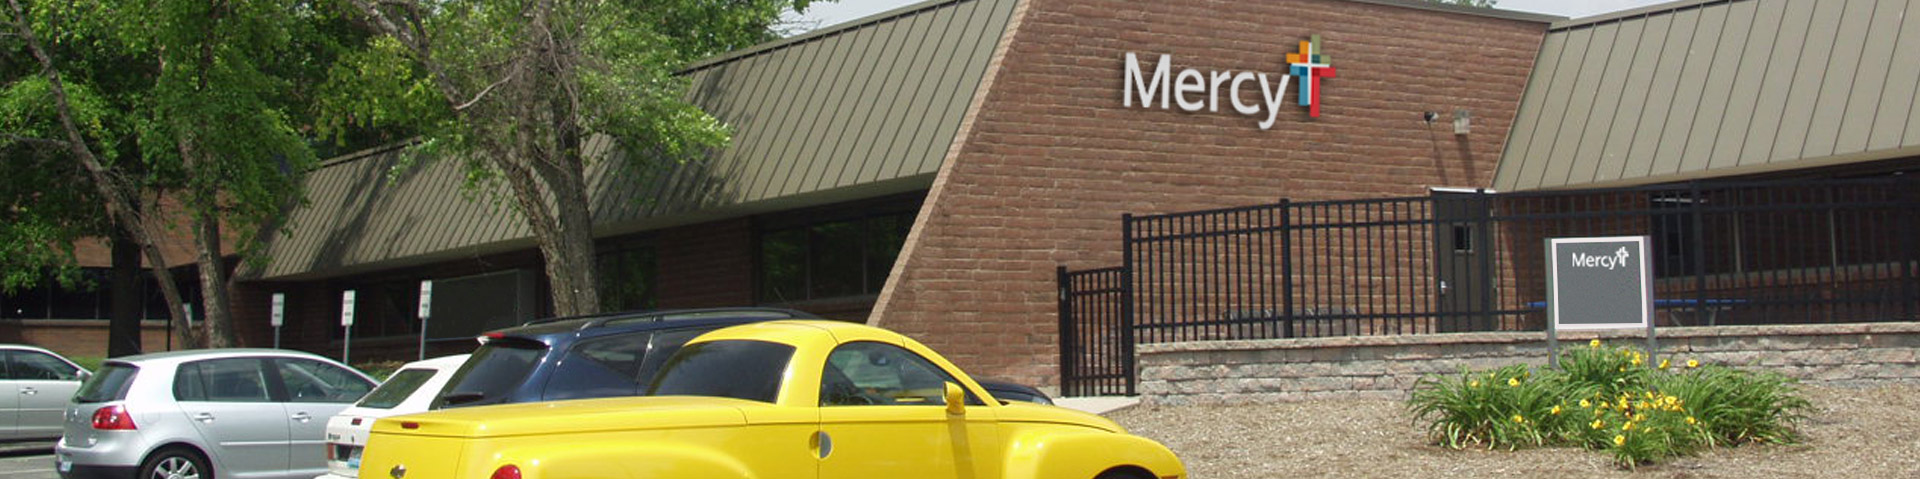 WEB_Hero_Location_Mercy-Hospital-Edgewood-Behavioral-Health